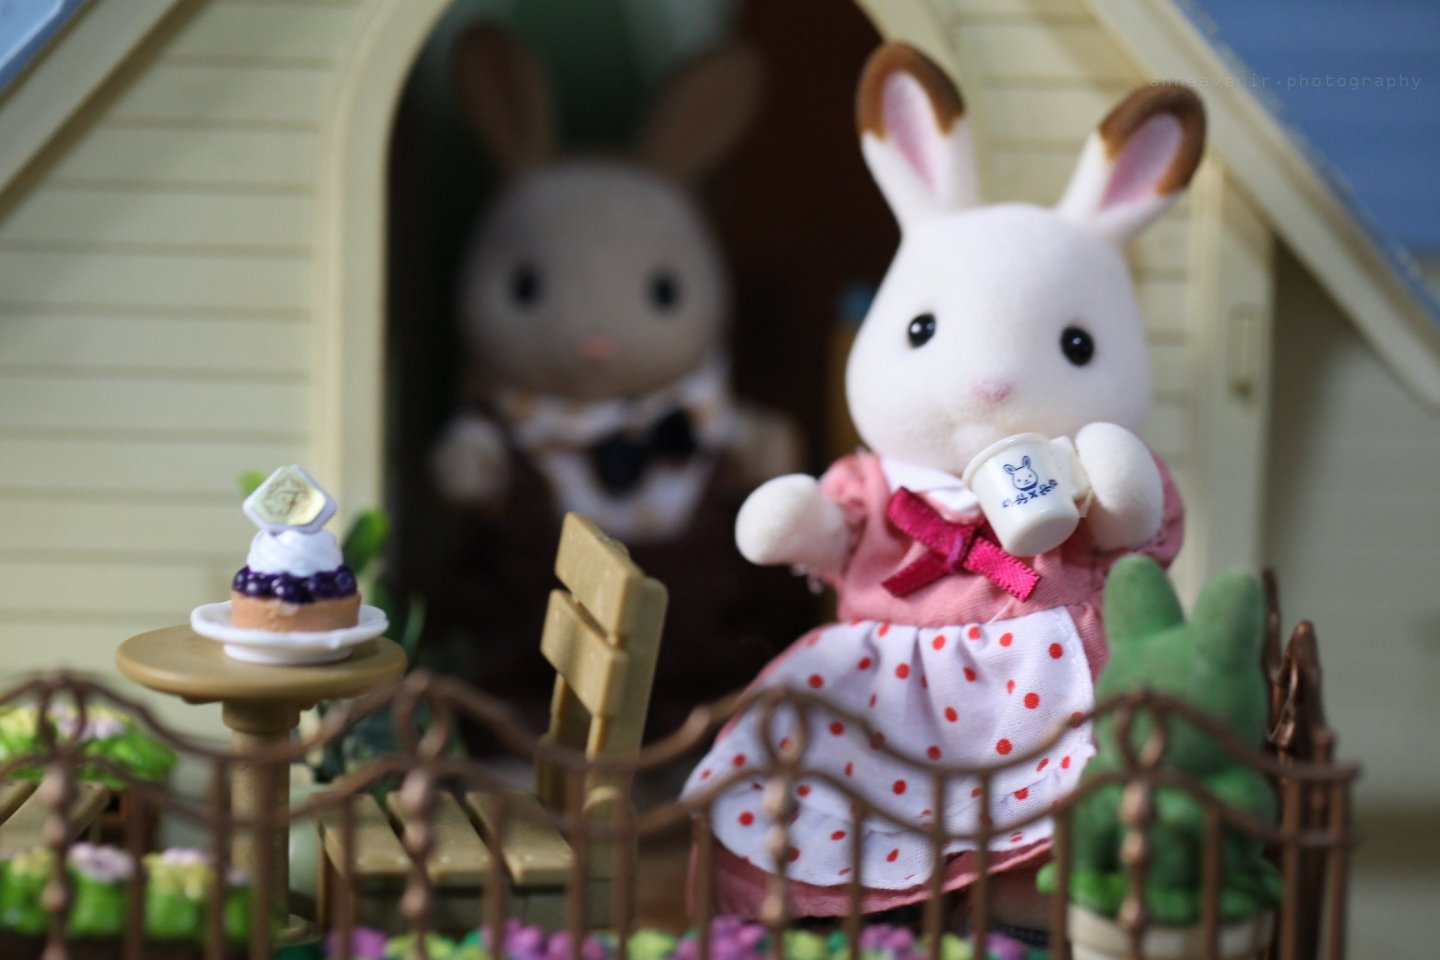 Sylvanian Families dolls are known and loved across the world